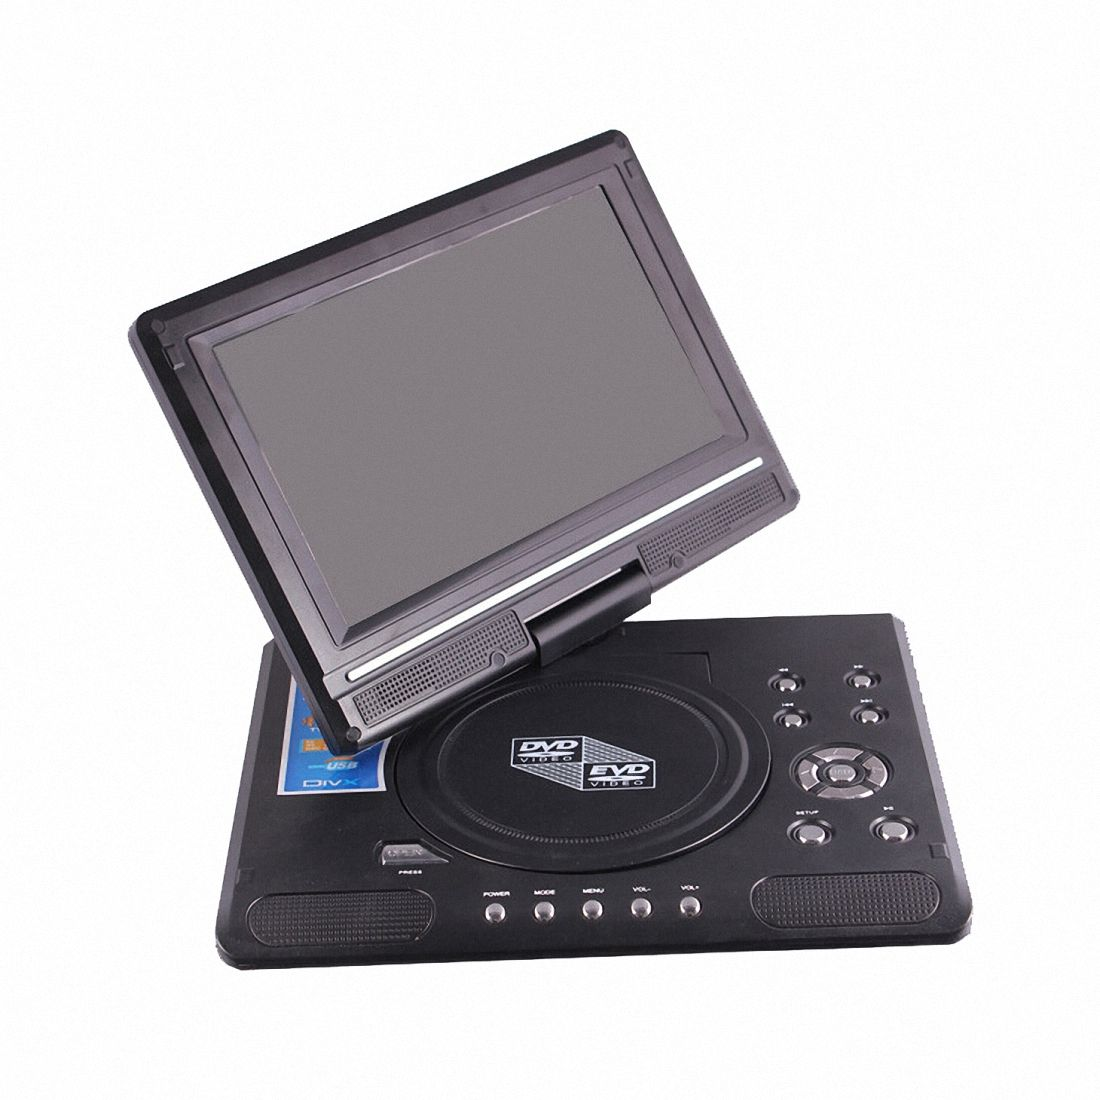 9.8-inch Portable Mobile DVD with HD Mini TV Player9.8-inch Portable Mobile DVD with HD Mini TV Player